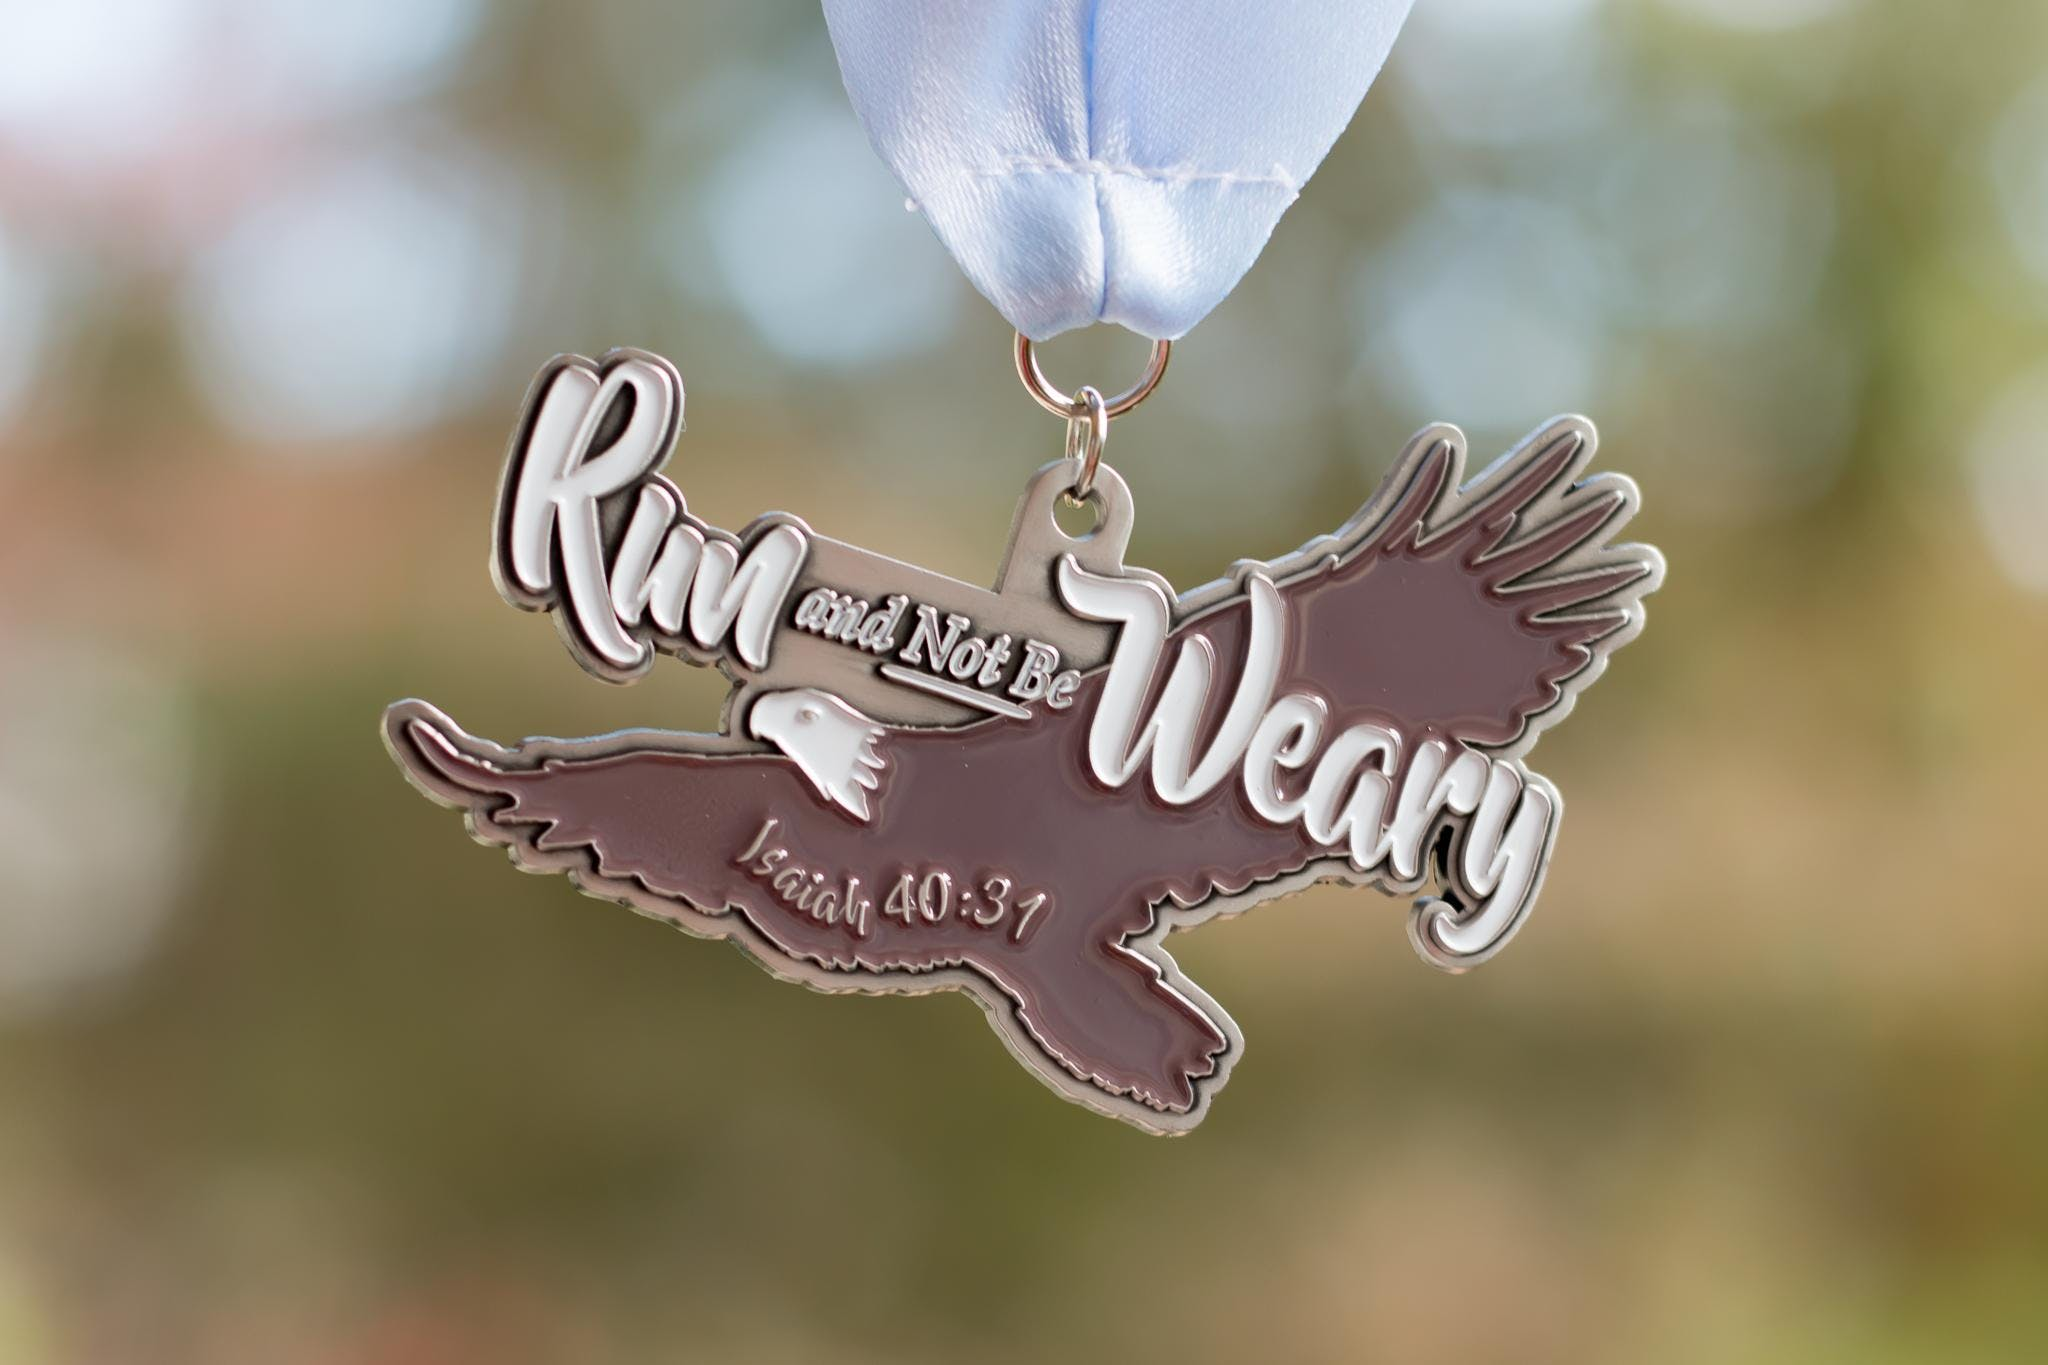 Run and Not Be Weary 1 Mile, 5K, 10K, 13.1, 26.2 - Tucson